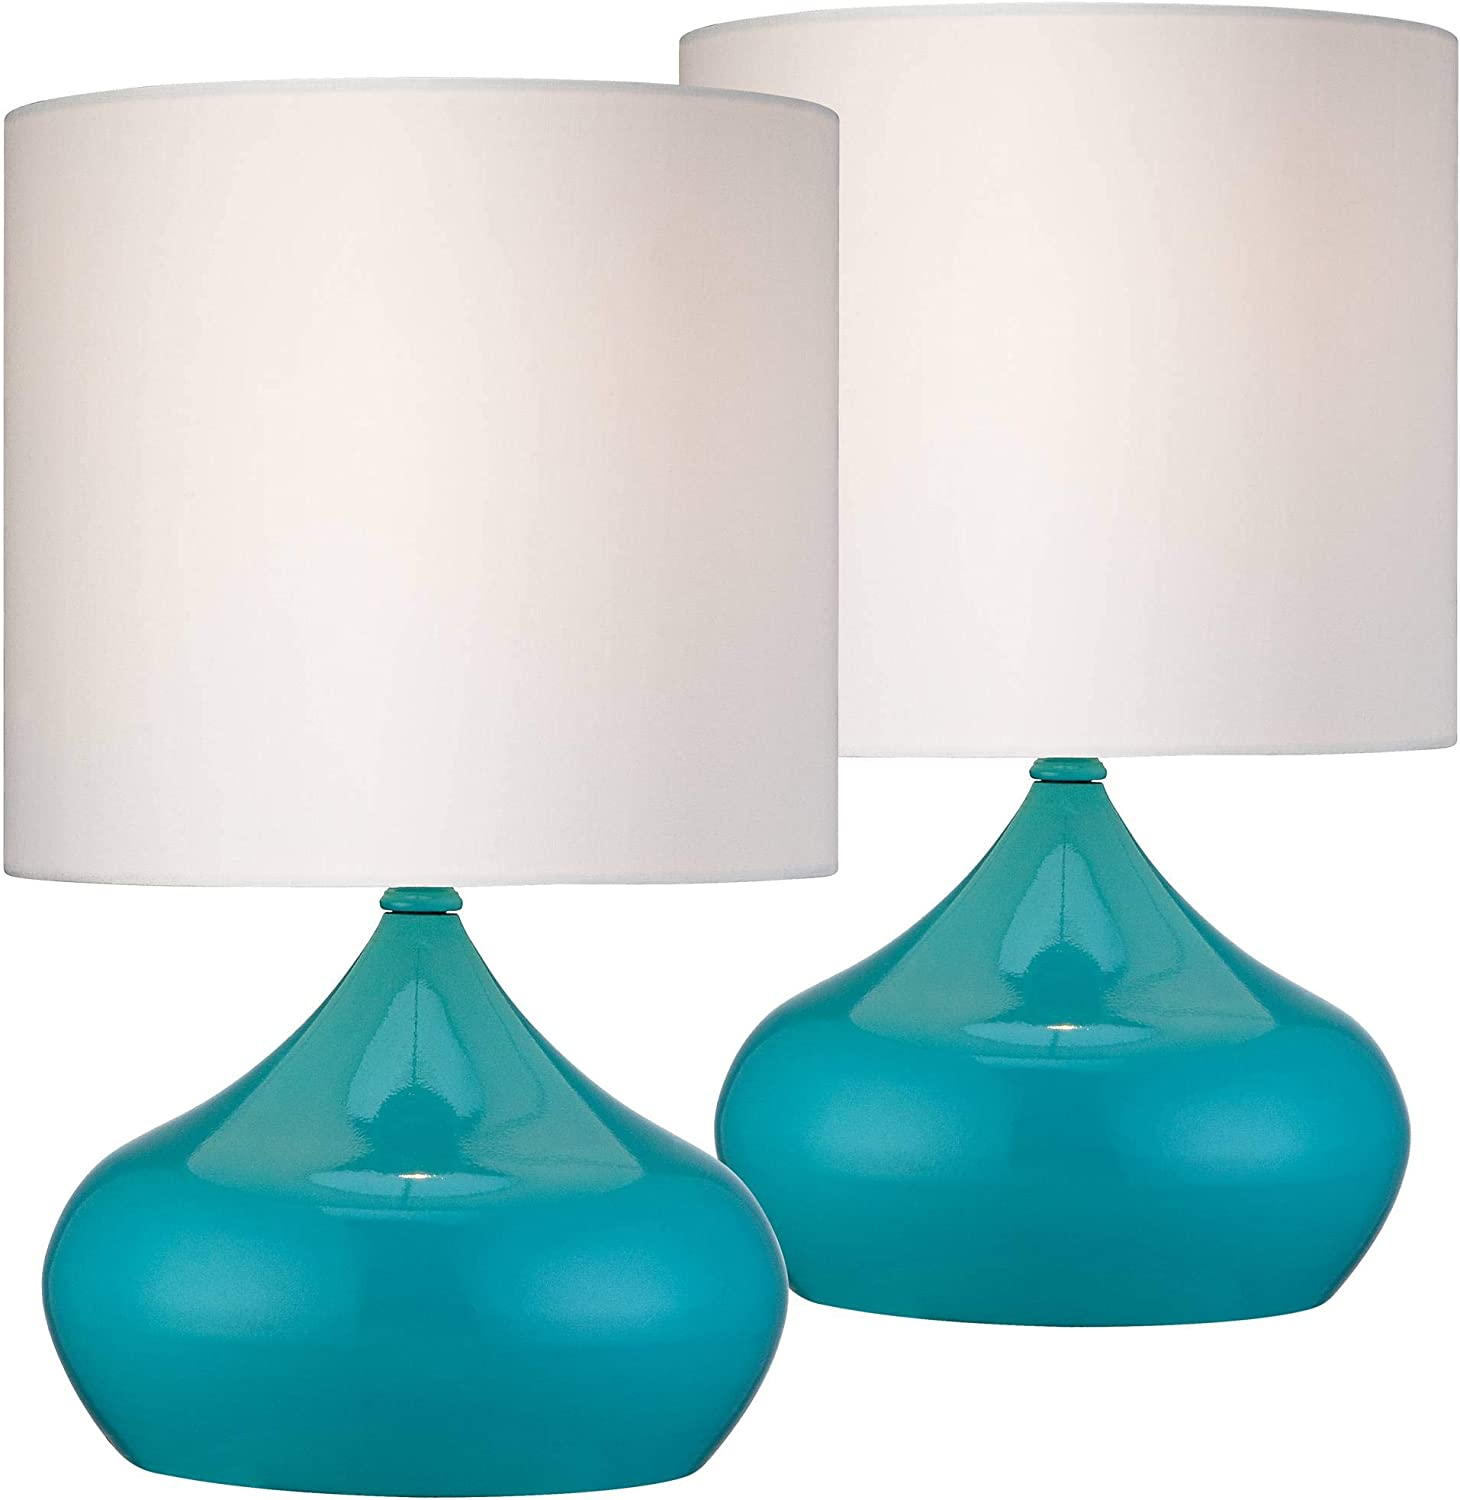 "Mid Century Modern Accent Table Lamps 14 3/4"" High Set of 2 Teal Blue Steel White Drum Shade for Bedroom Bedside - 360 Lighting"